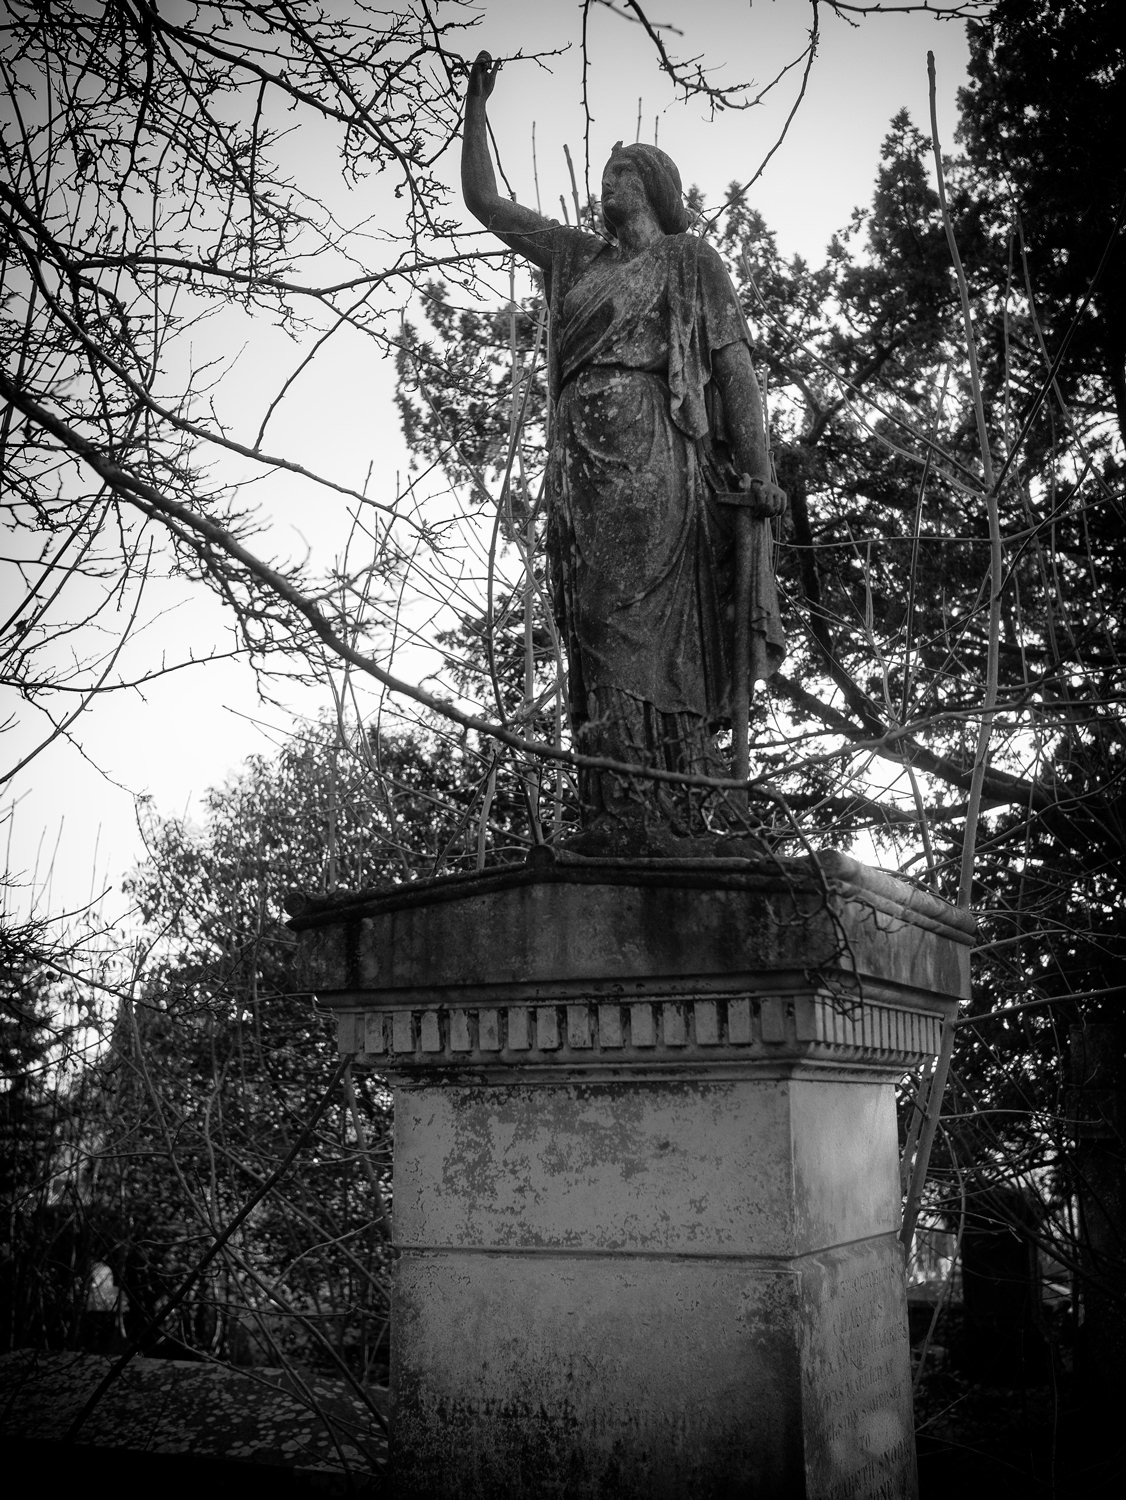 A statue in a typically Victorian, neo-classical style. The statue is a woman in draped clothes, with one arm up in the air.